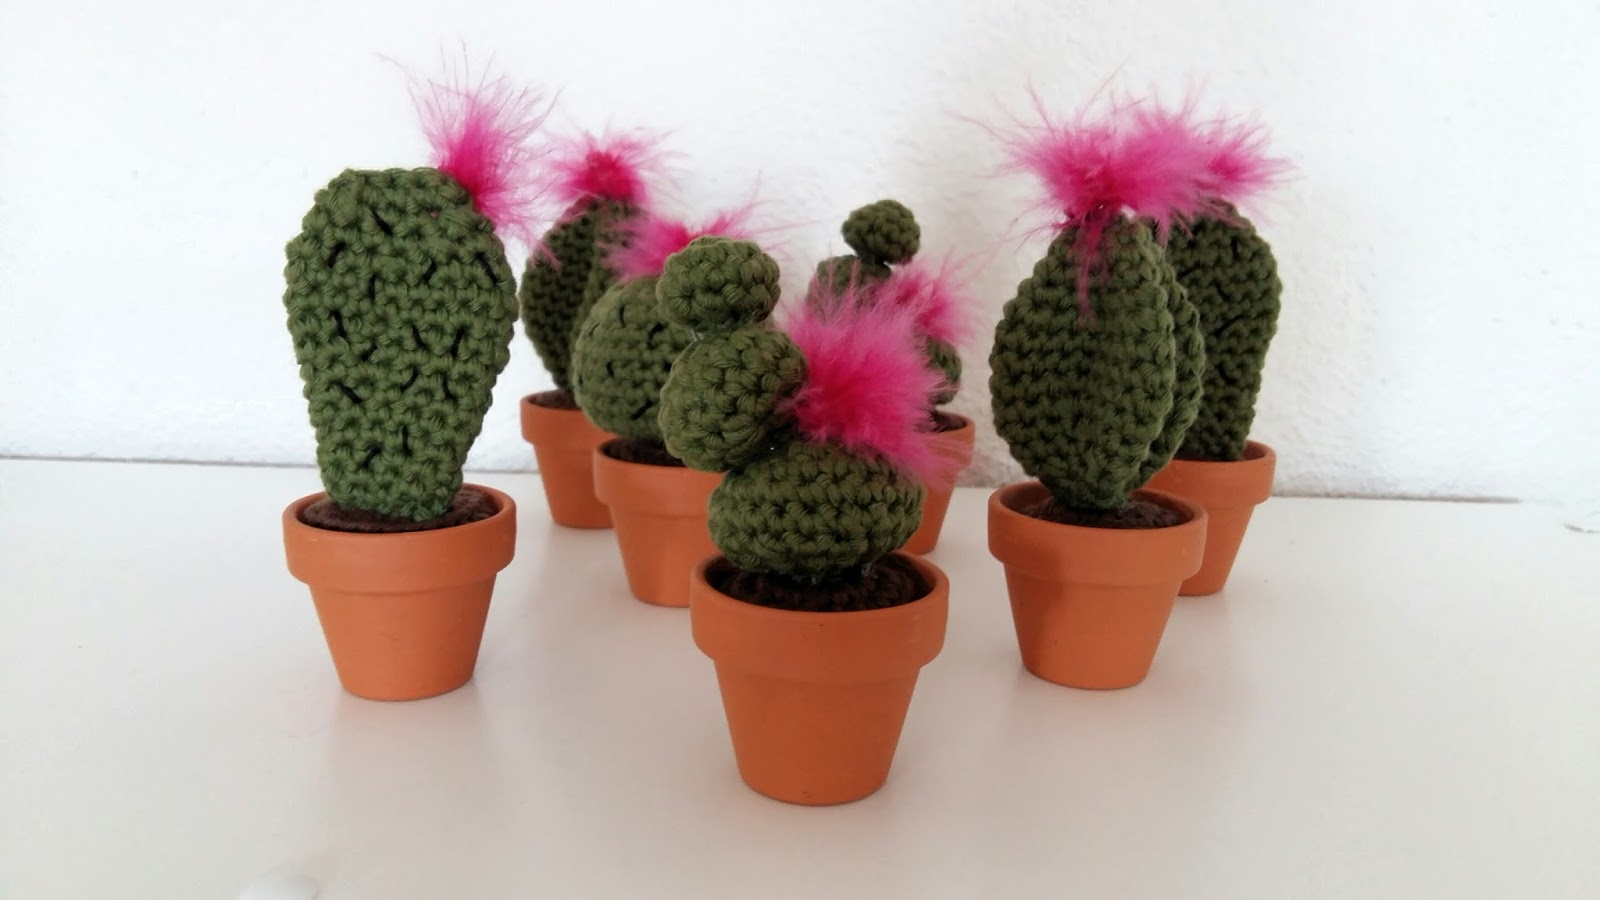 f e du tricot mini cactus au crochet tuto inside. Black Bedroom Furniture Sets. Home Design Ideas